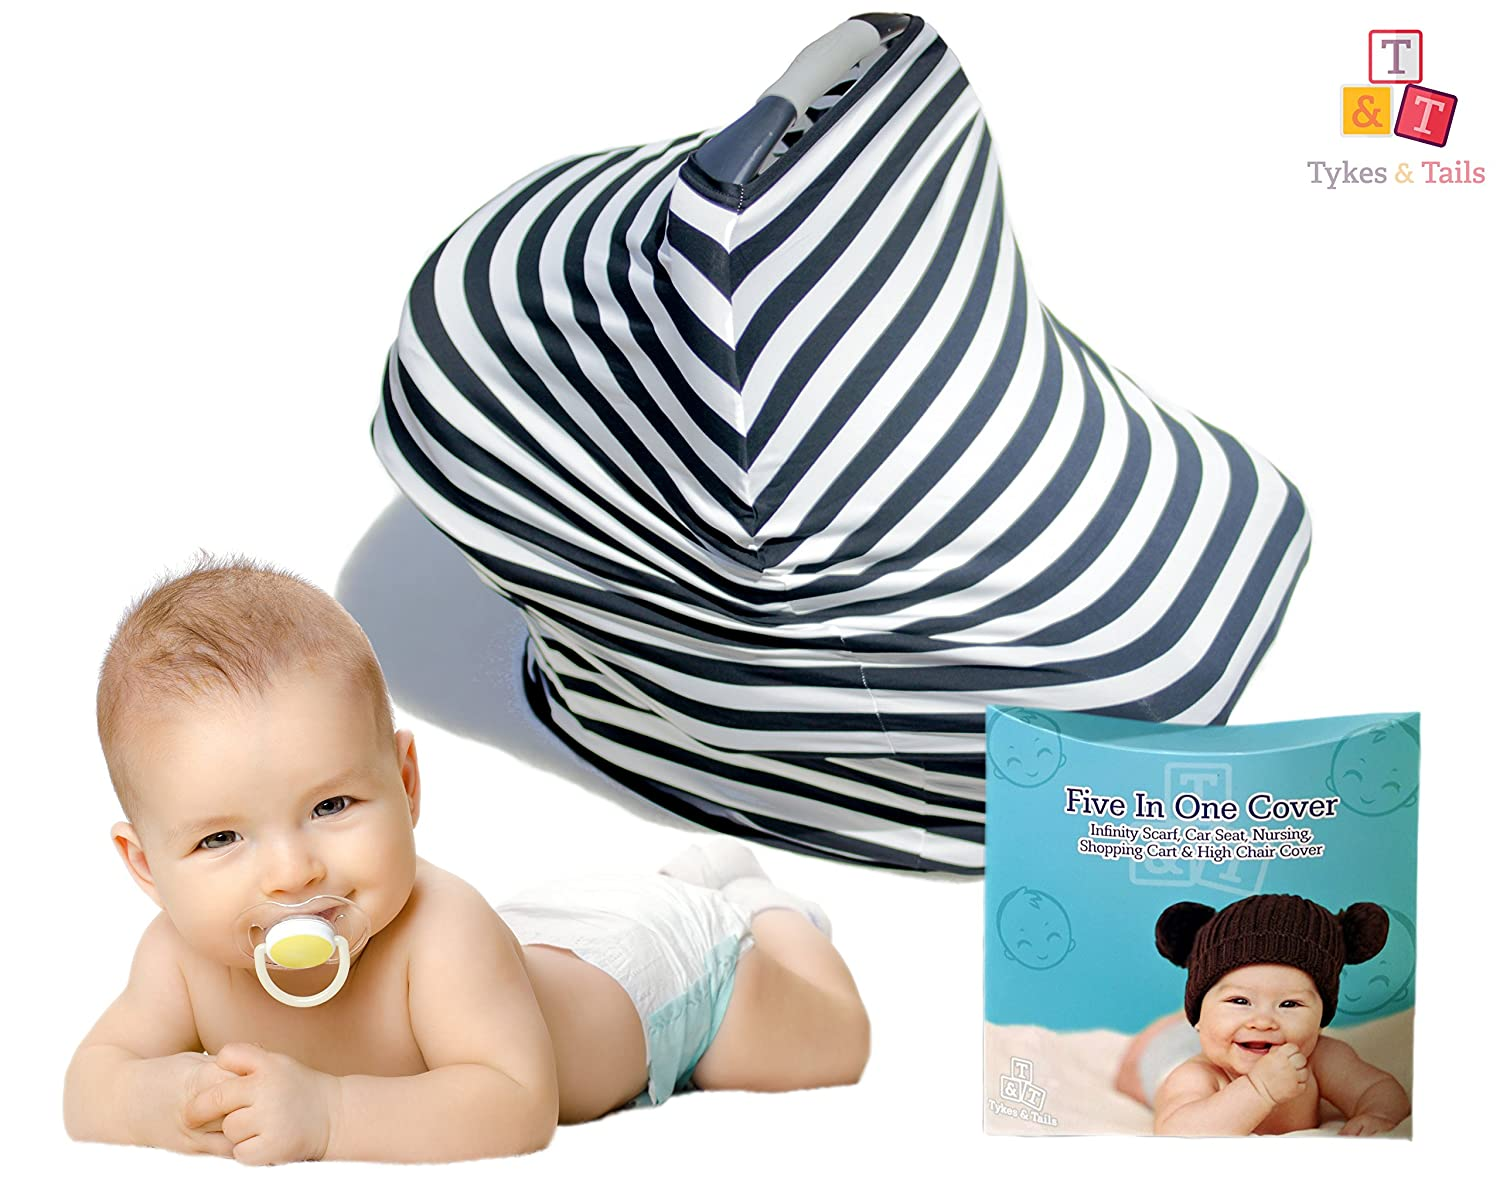 人気 Tykes & Tails Stripe - 5 in 1 Pattern Baby Breastfeeding Colors Cover, Car Seat Cover, Shopping Cart Cover and Trendy Scarf - Black/ White Stripe Pattern - Many Other Colors Options - Best 5in1 Nursing Cover on the Amazon by Tykes & Tails B01KGBJ5BM, 日本パール:0e67e6aa --- a0267596.xsph.ru